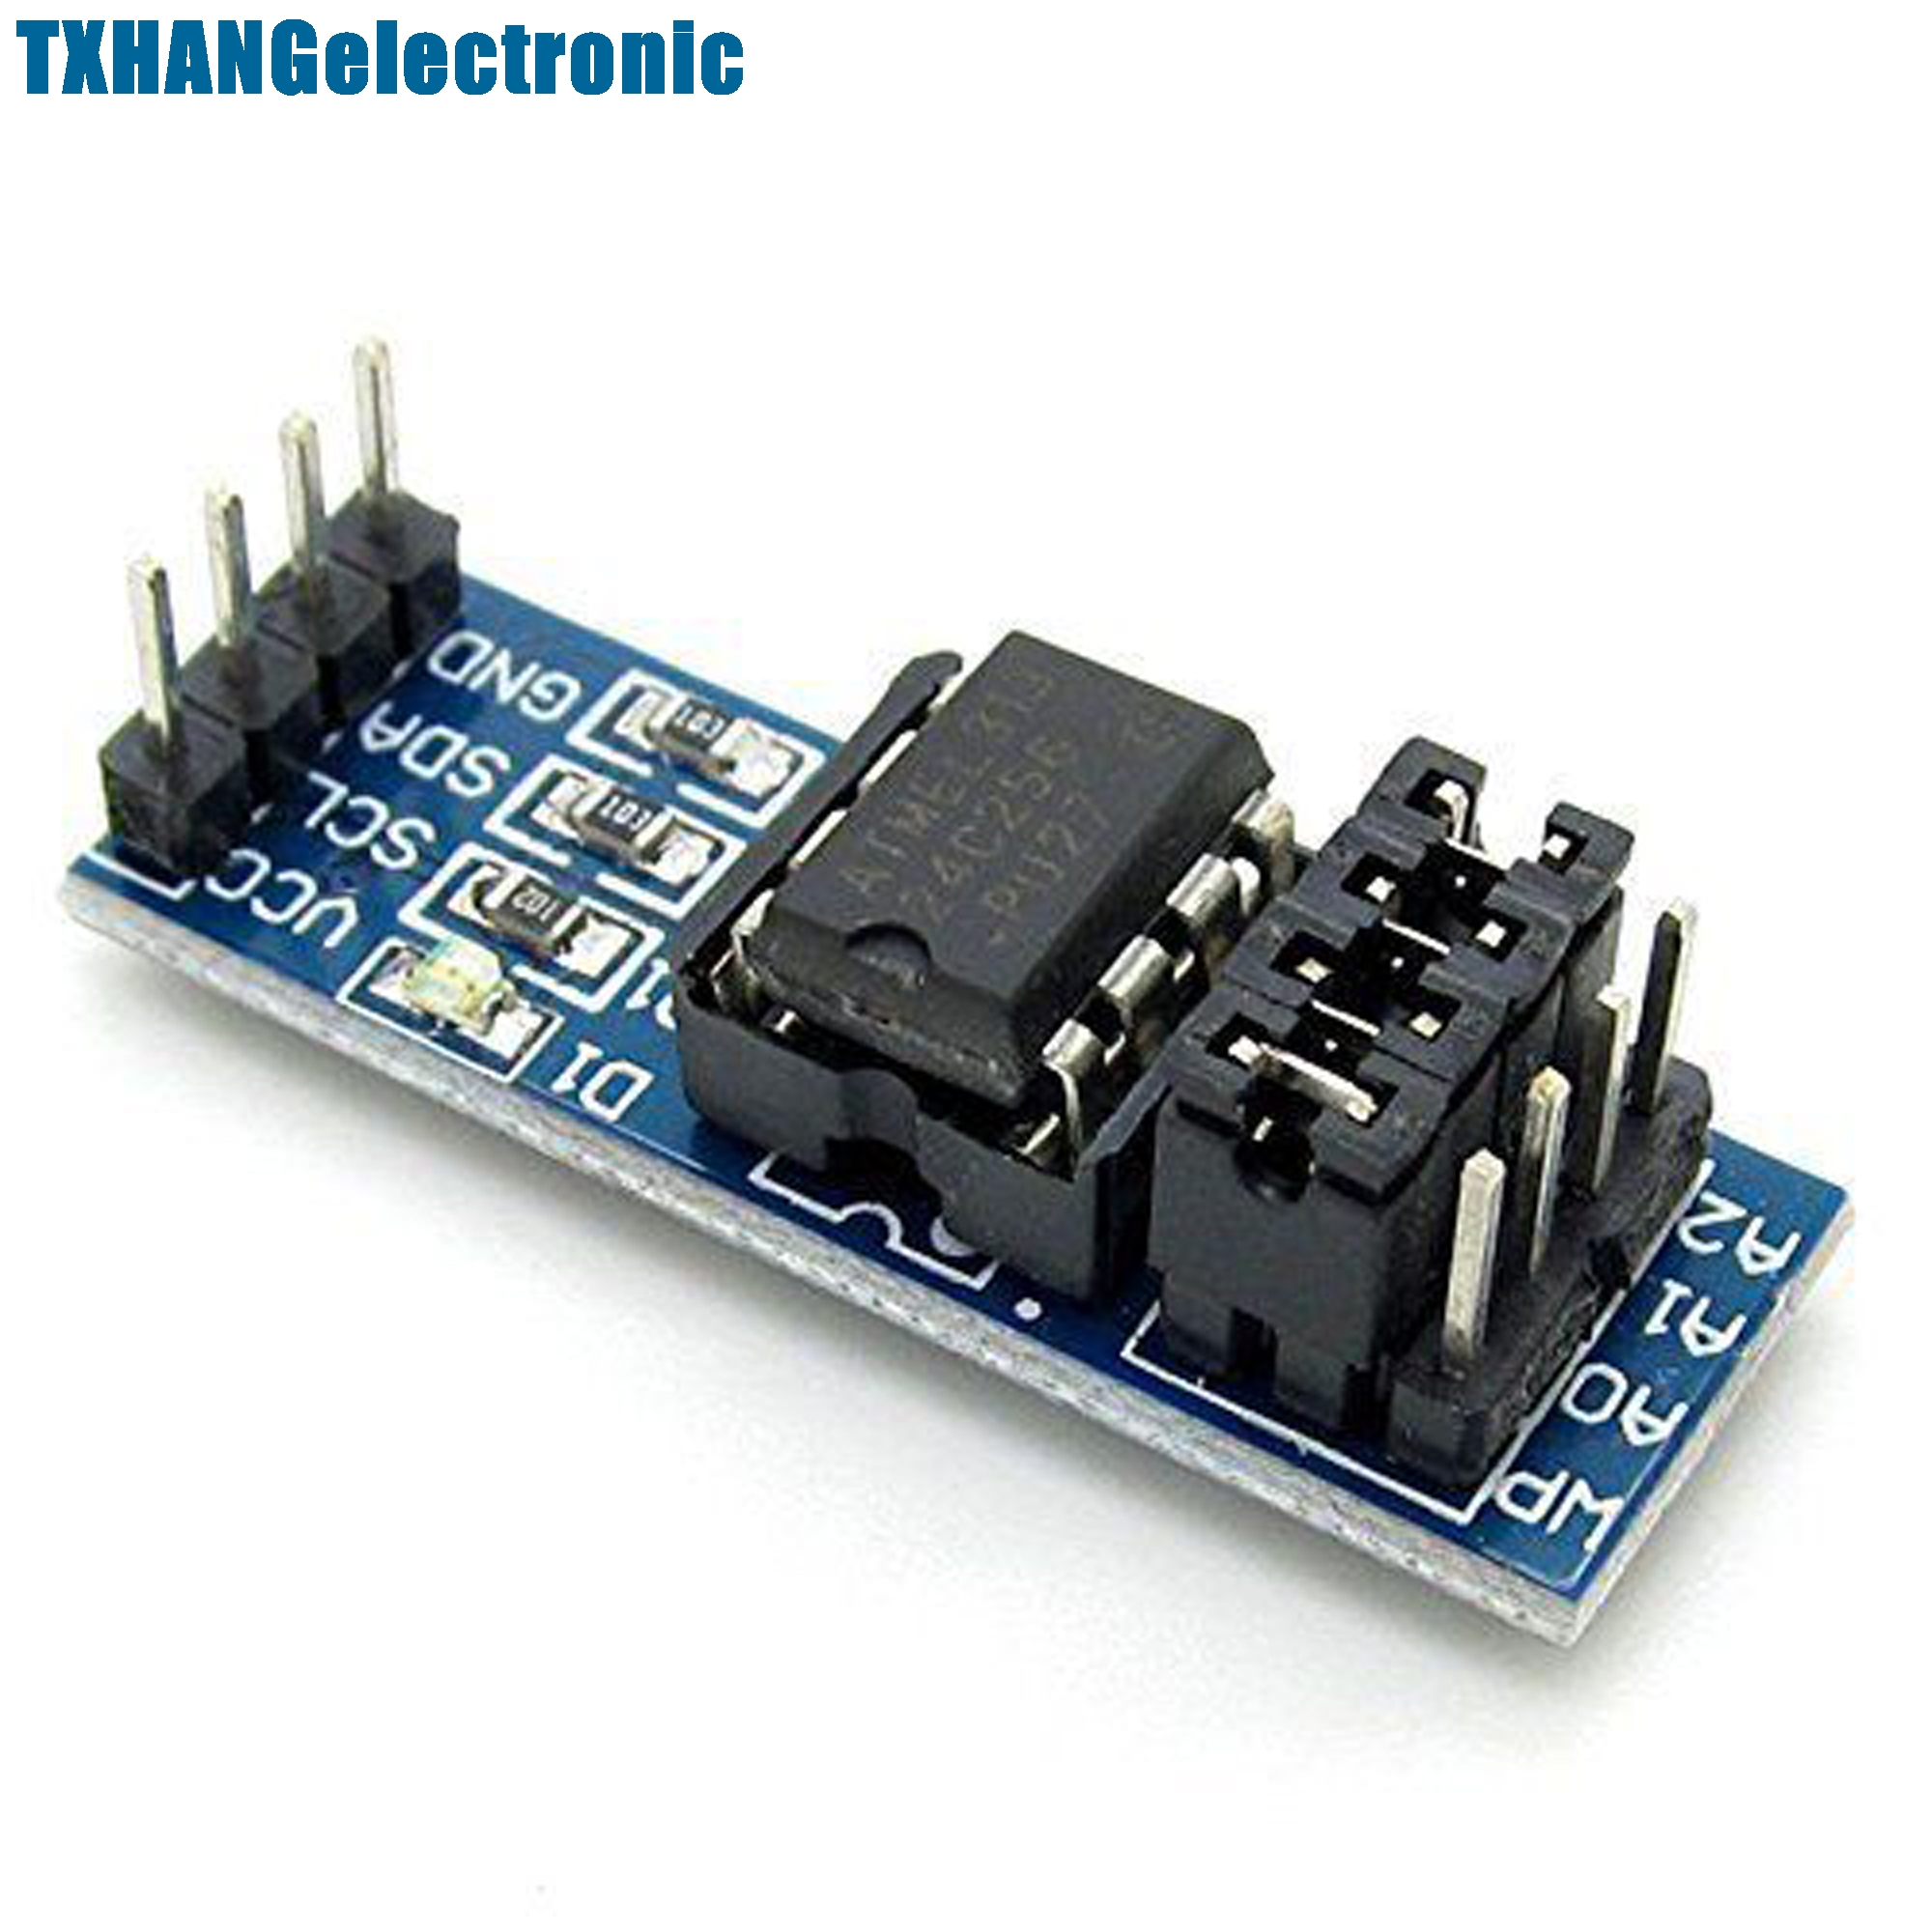 AT24C256 Serial EEPROM I2C Interface EEPROM Data Storage Module Arduino PIC NEW